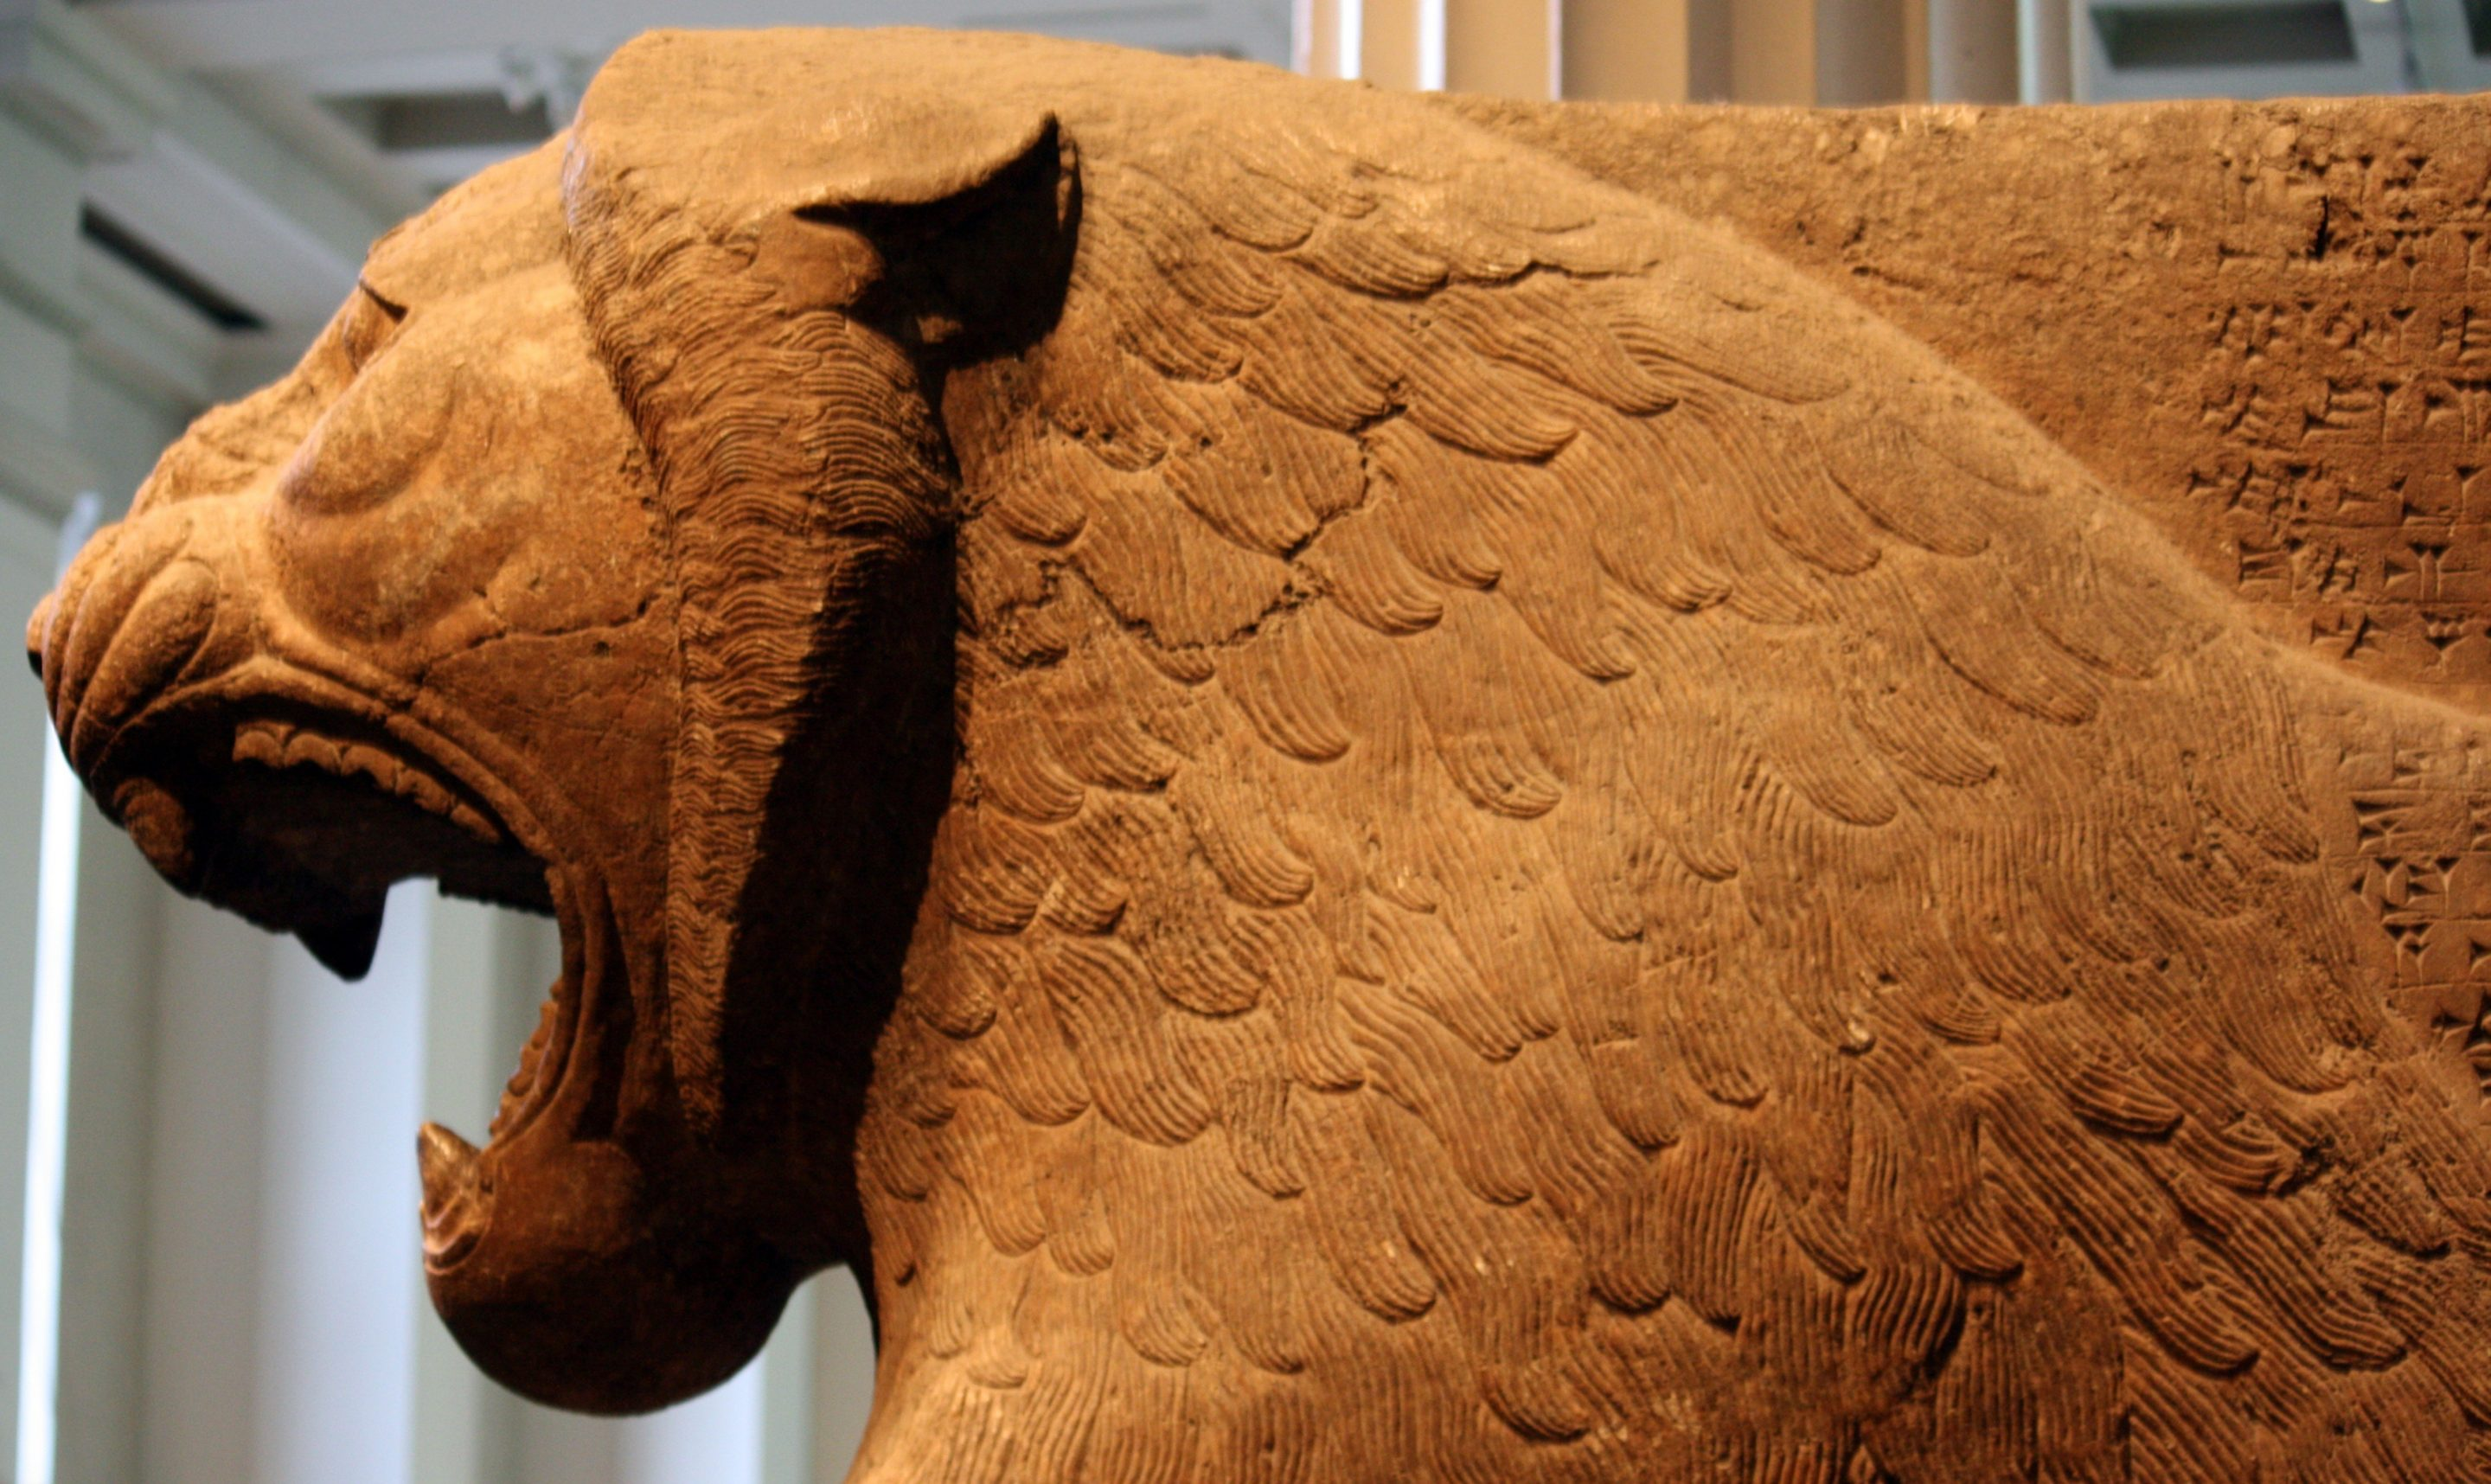 Statue of lion from Temple of Ishtar, 9th century BC